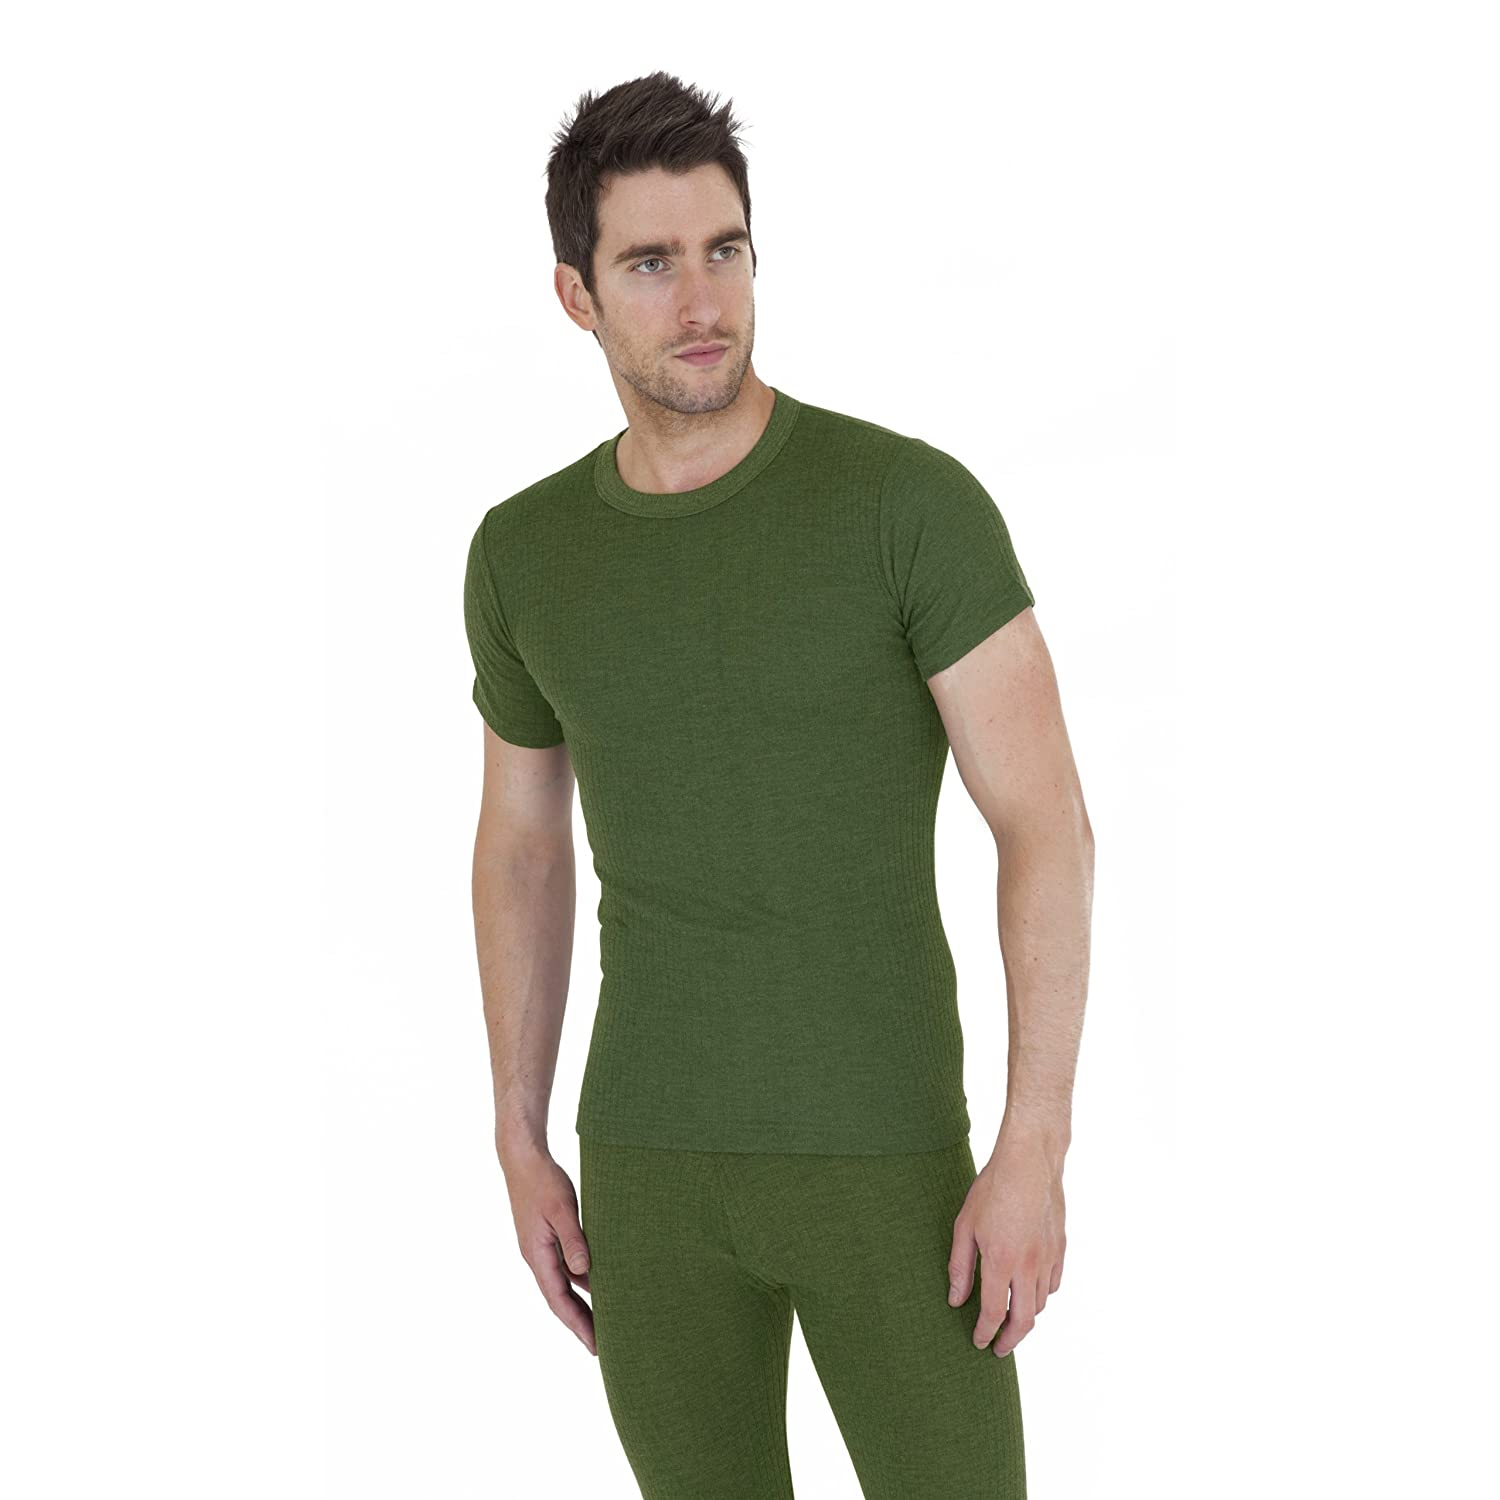 Mens Thermal Underwear Short Sleeve T Shirt (British Made)